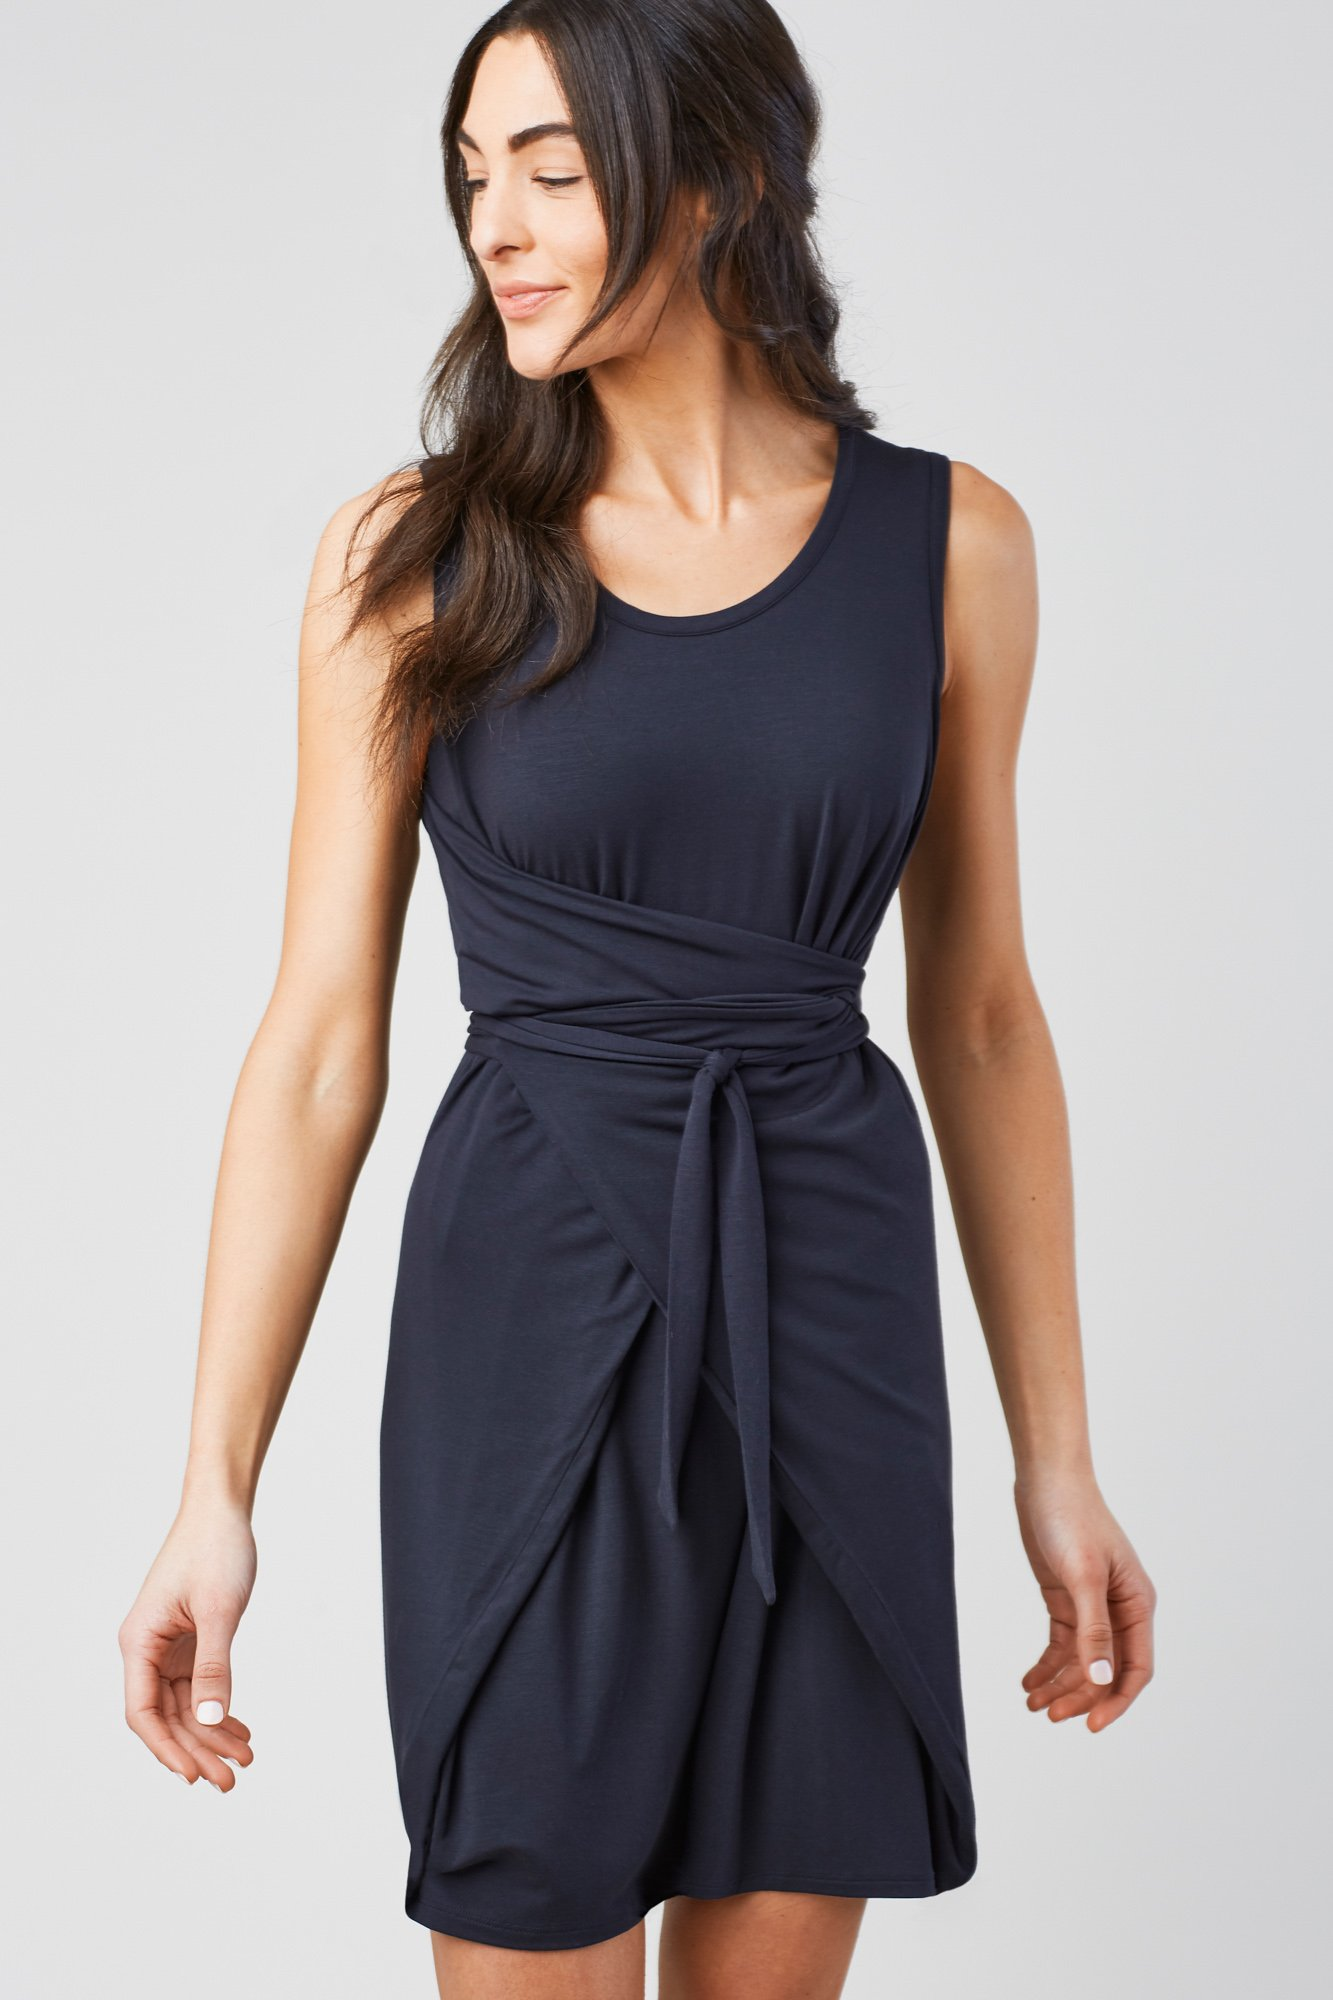 27 Ultra Packable Travel Dresses For Summer Smartertravel